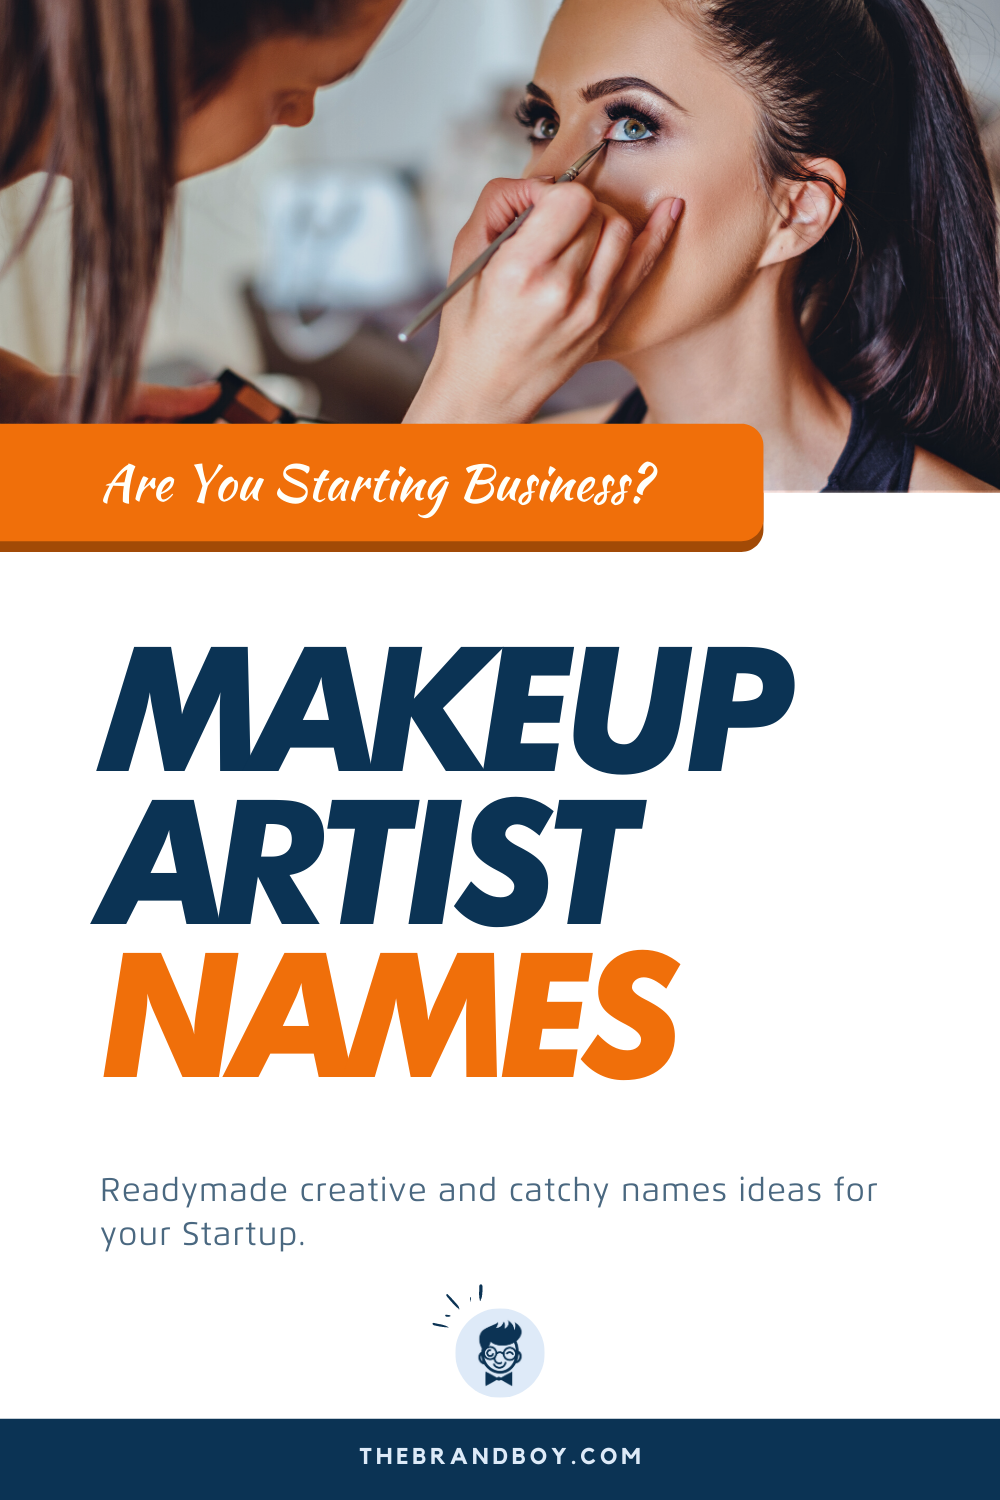 479+ Catchy MakeUp Artist Name Ideas ( Video+ Infographic